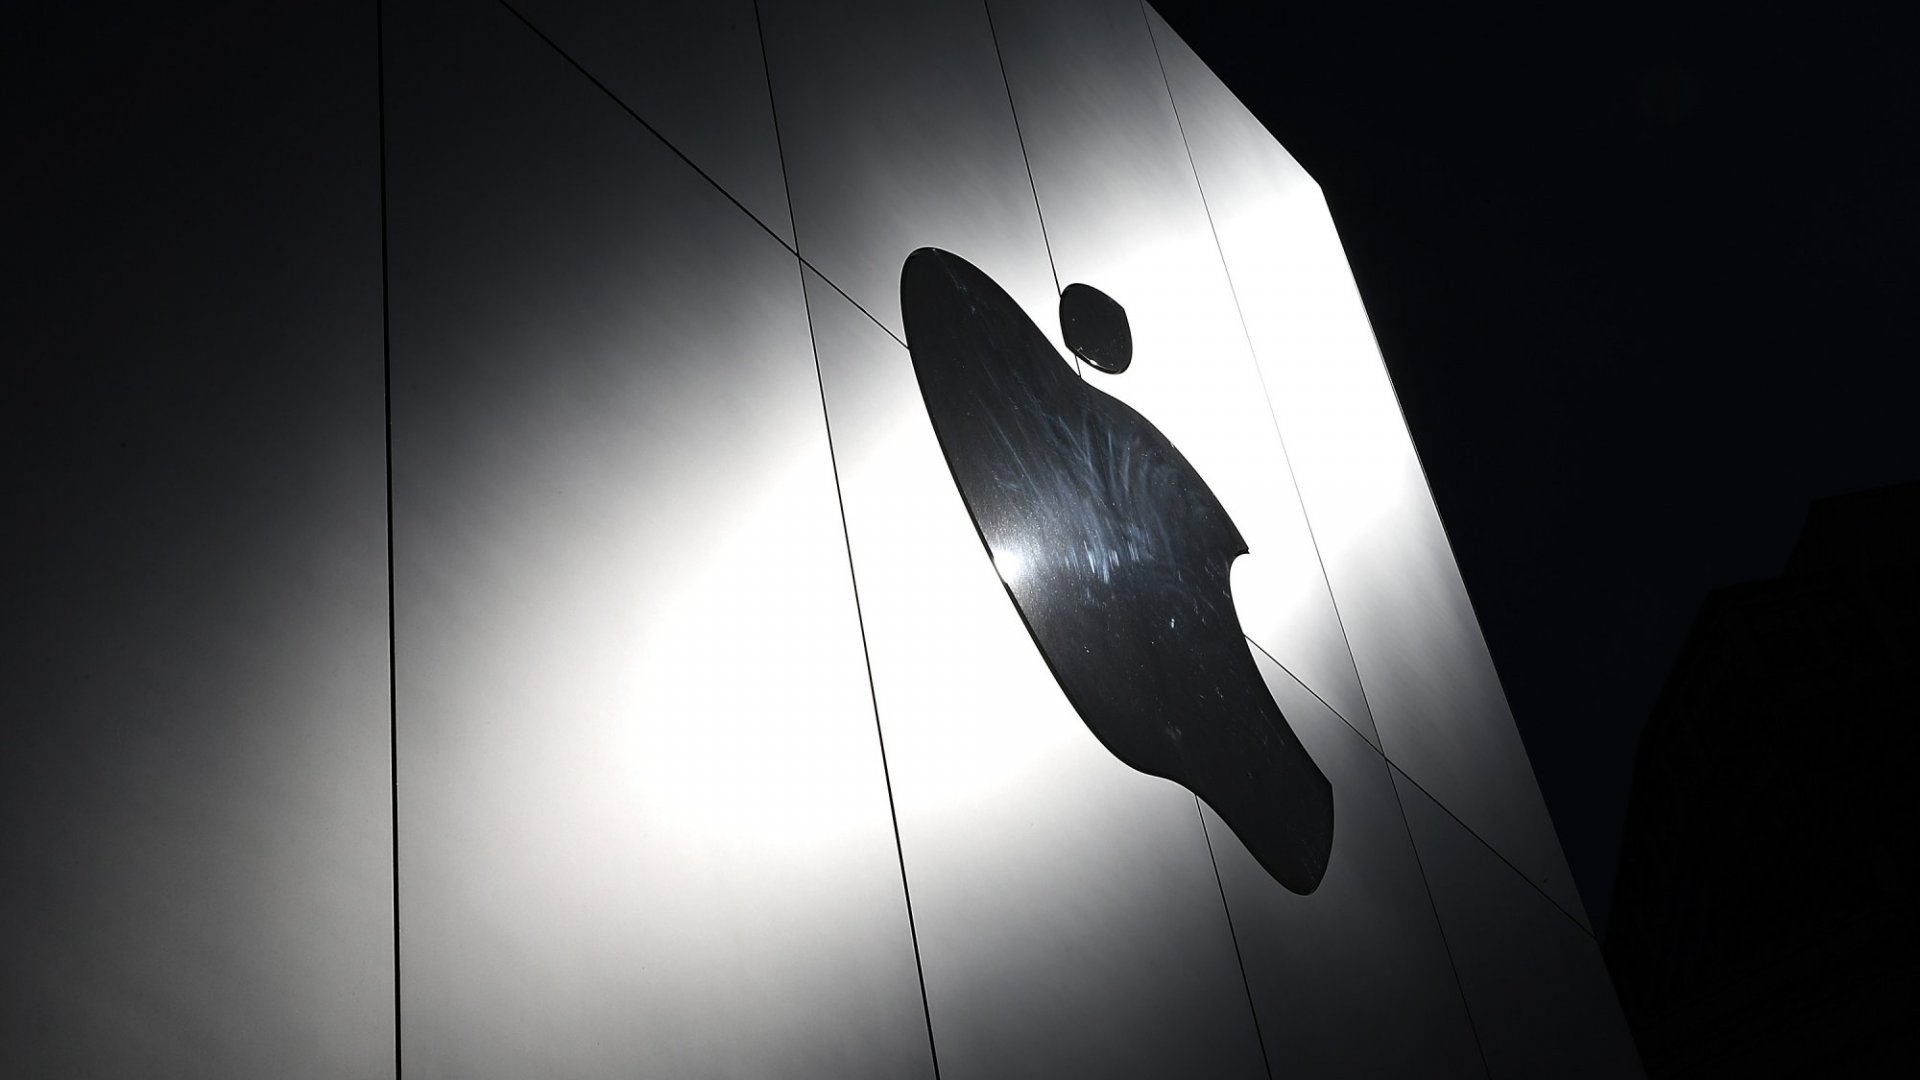 Apple Totally Owned This Multibillion Dollar Market for 11 Years. But After Monday's Big Supreme Court Decision, It's Suddenly All at Risk